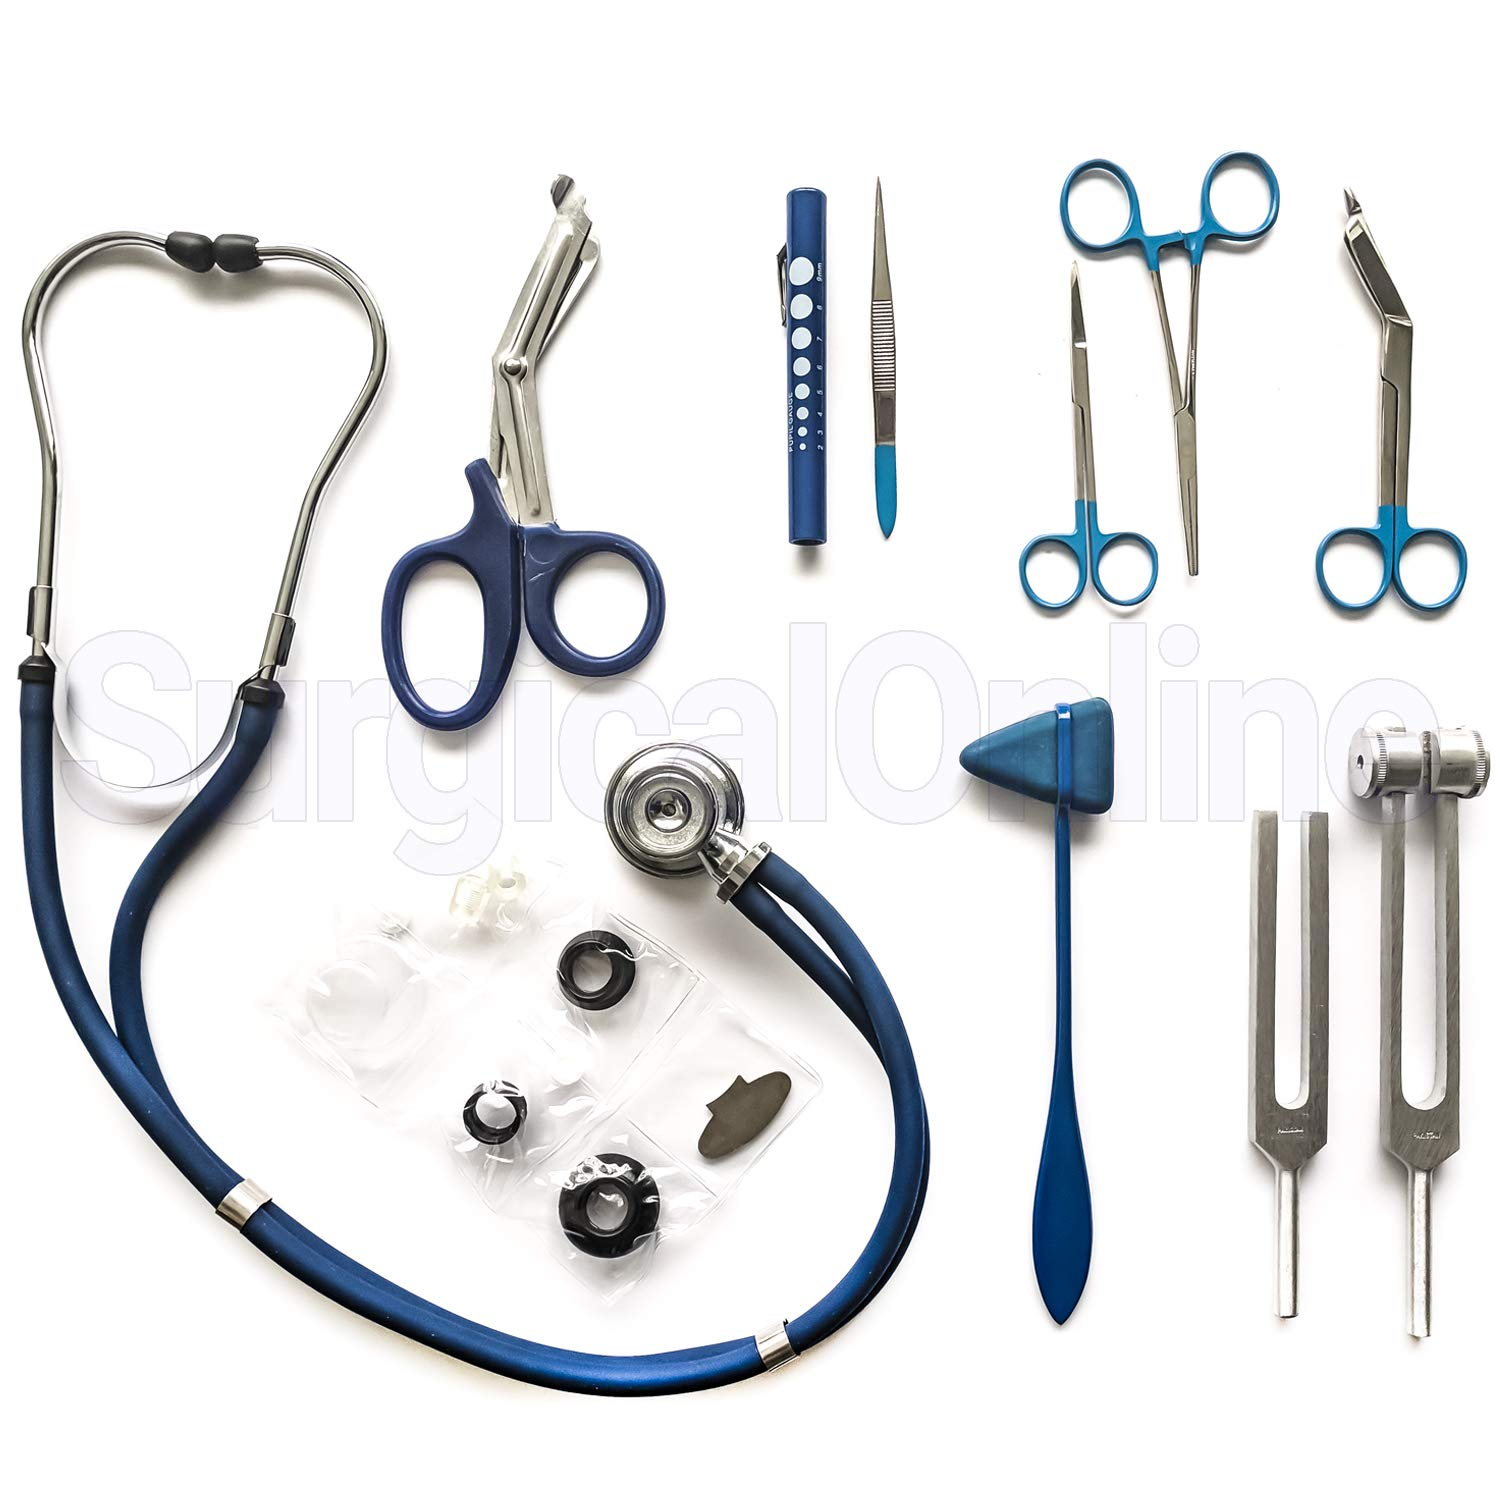 Otoscope /& Ophthalmoscope Set ENT Surgical Instruments